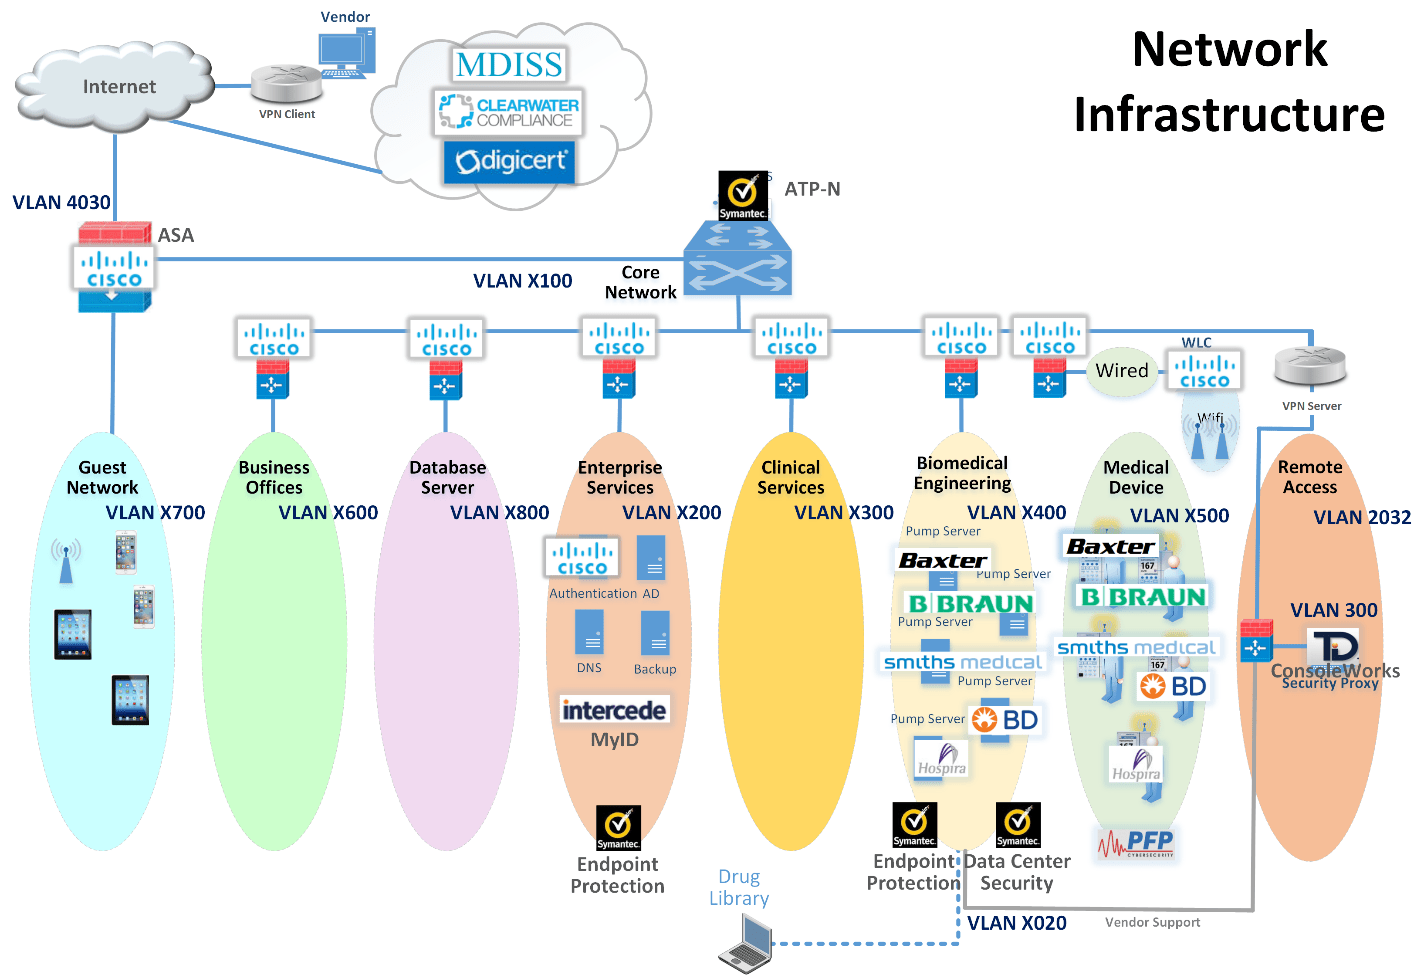 symantec endpoint protection architecture diagram orbit fan switch wiring securing wireless infusion pumps image0